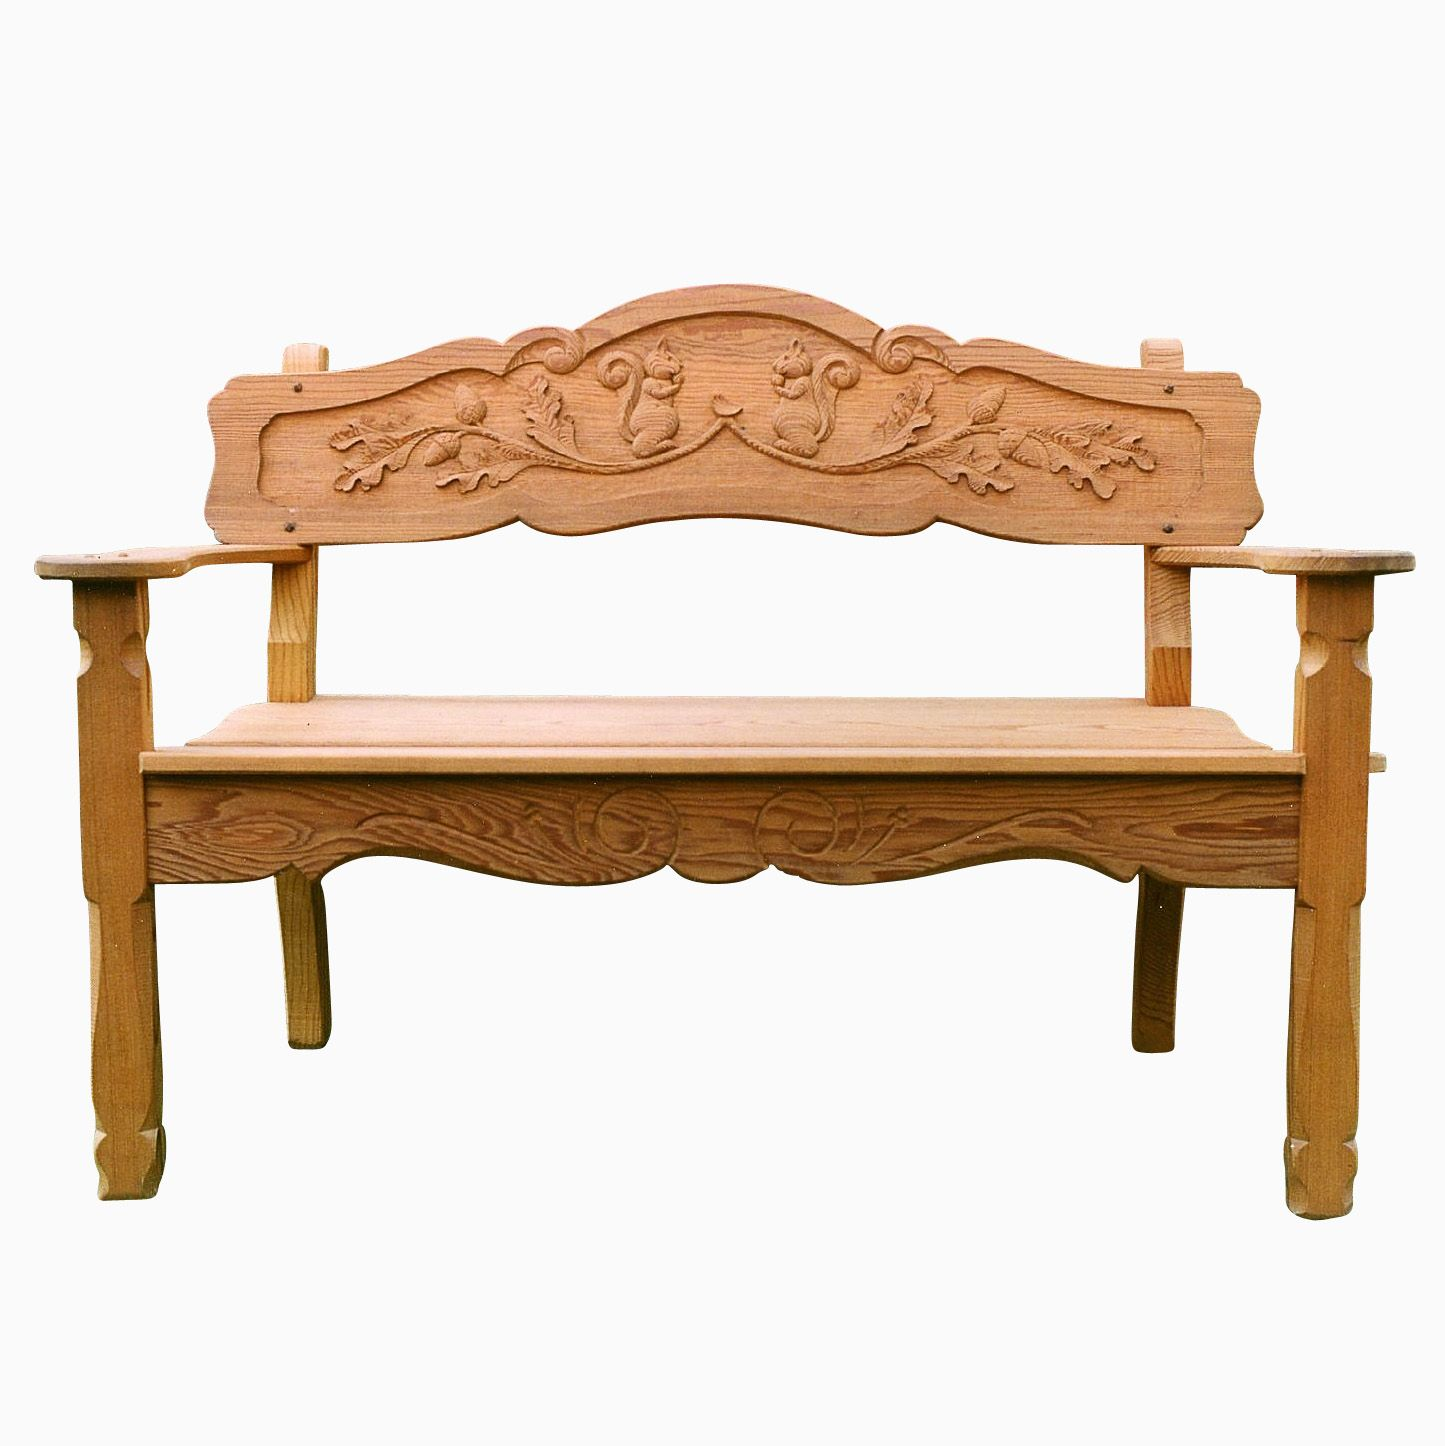 Garden Furniture Cyprus buy a hand made handcarved cyprus or mahogany garden bench, made